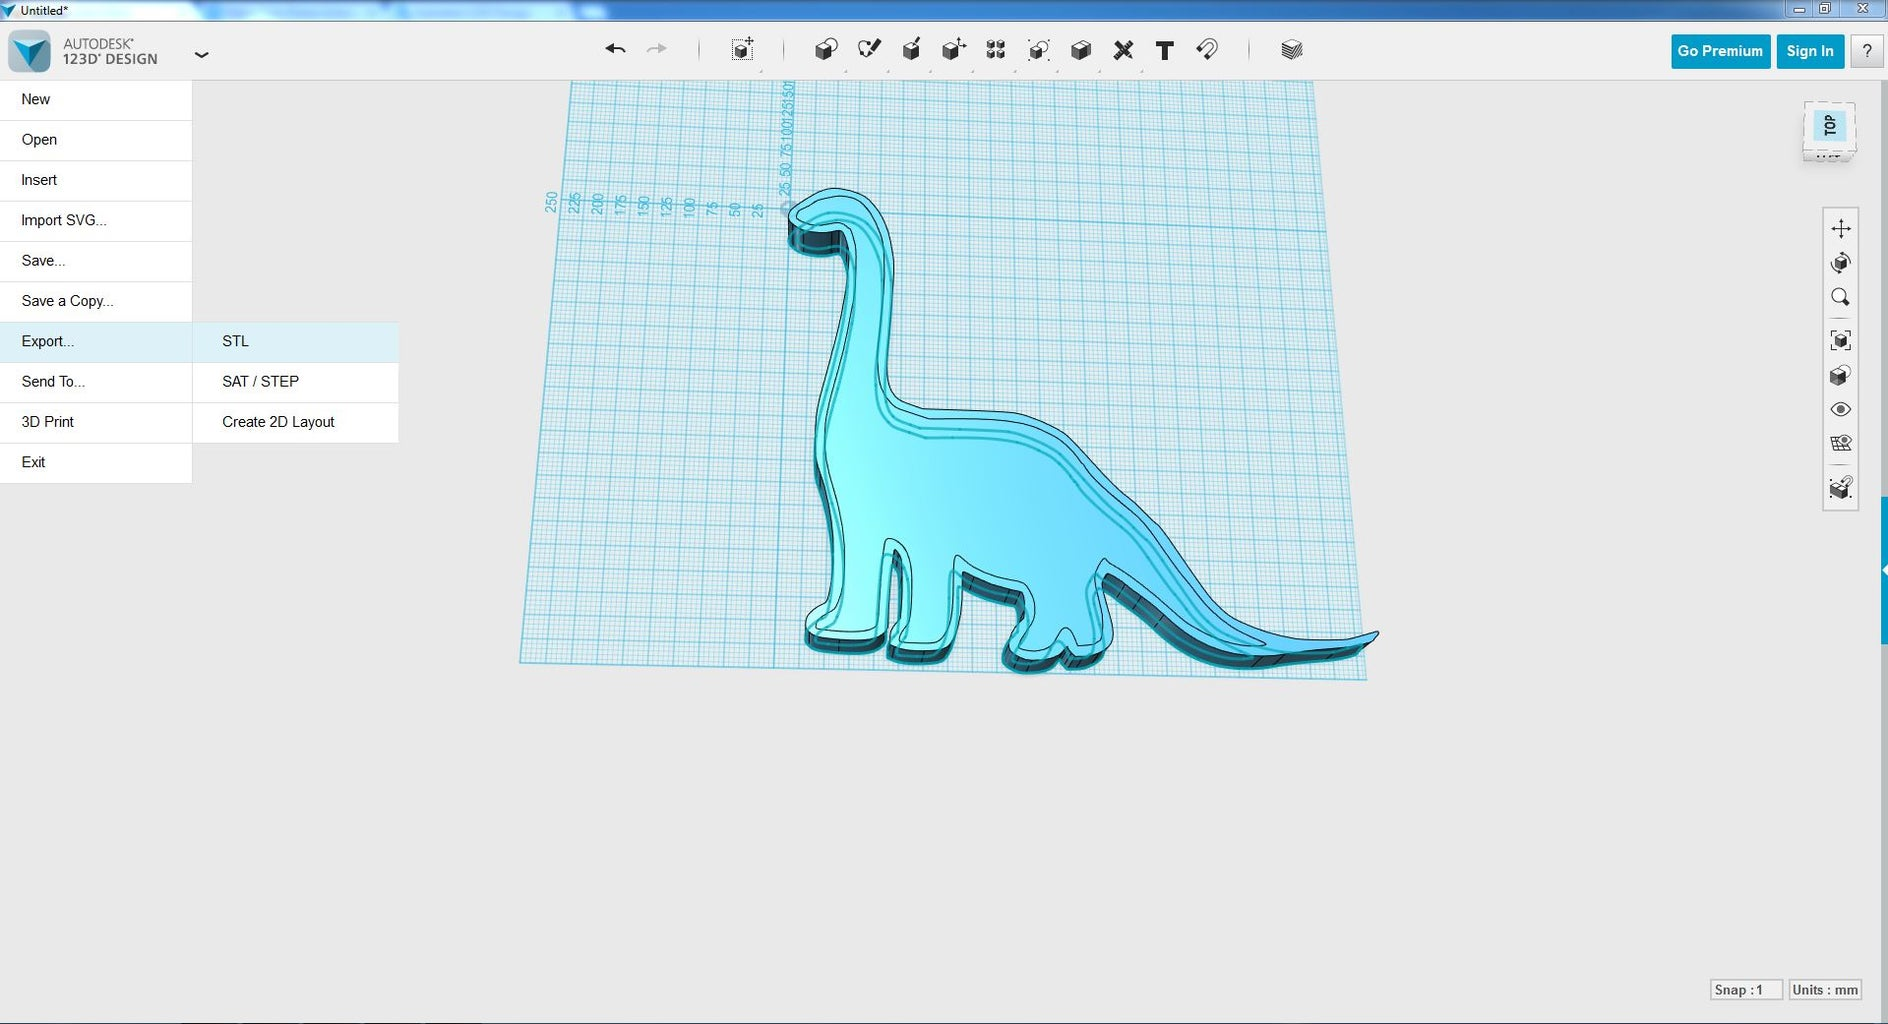 Export .stl for 3D Printing